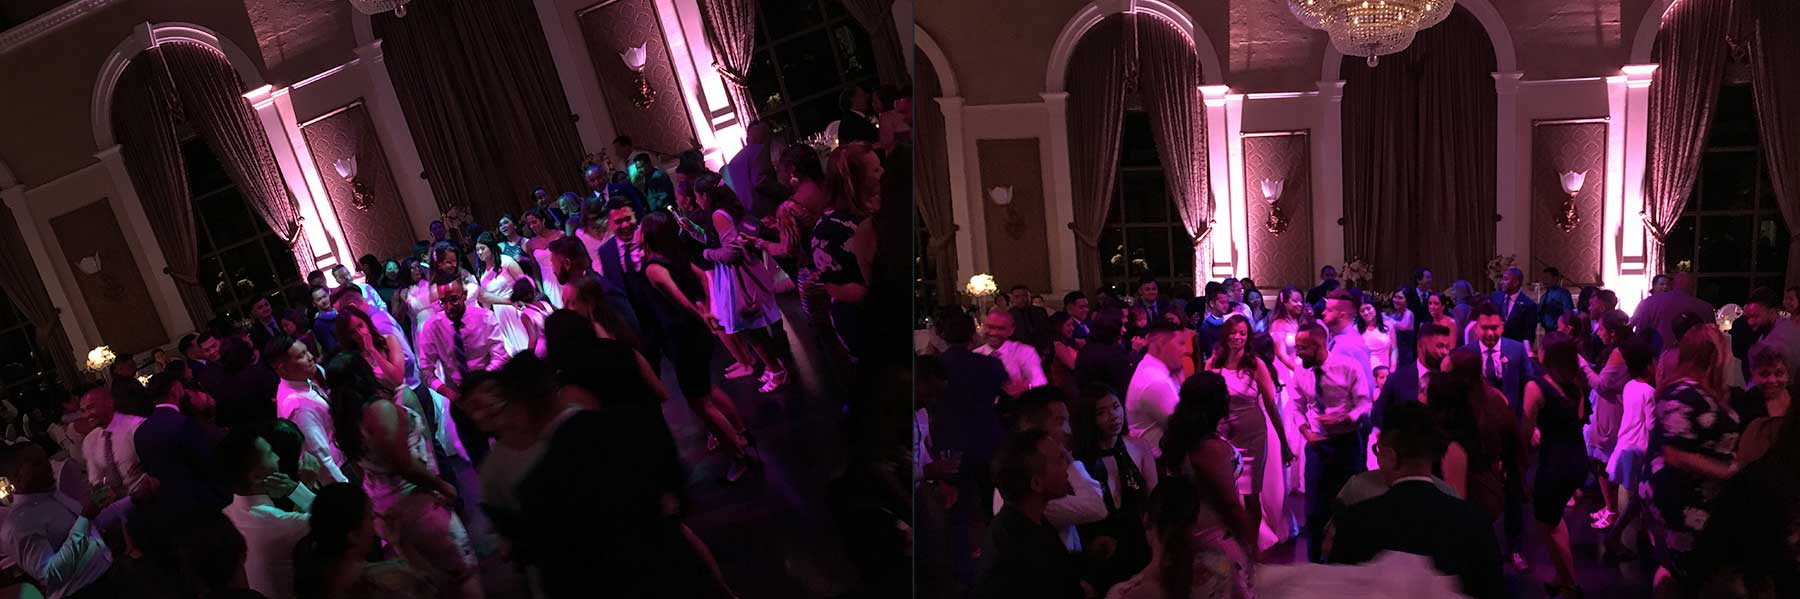 Kooltempo-DJ-Services-at-Liberty-Grand-Toronto